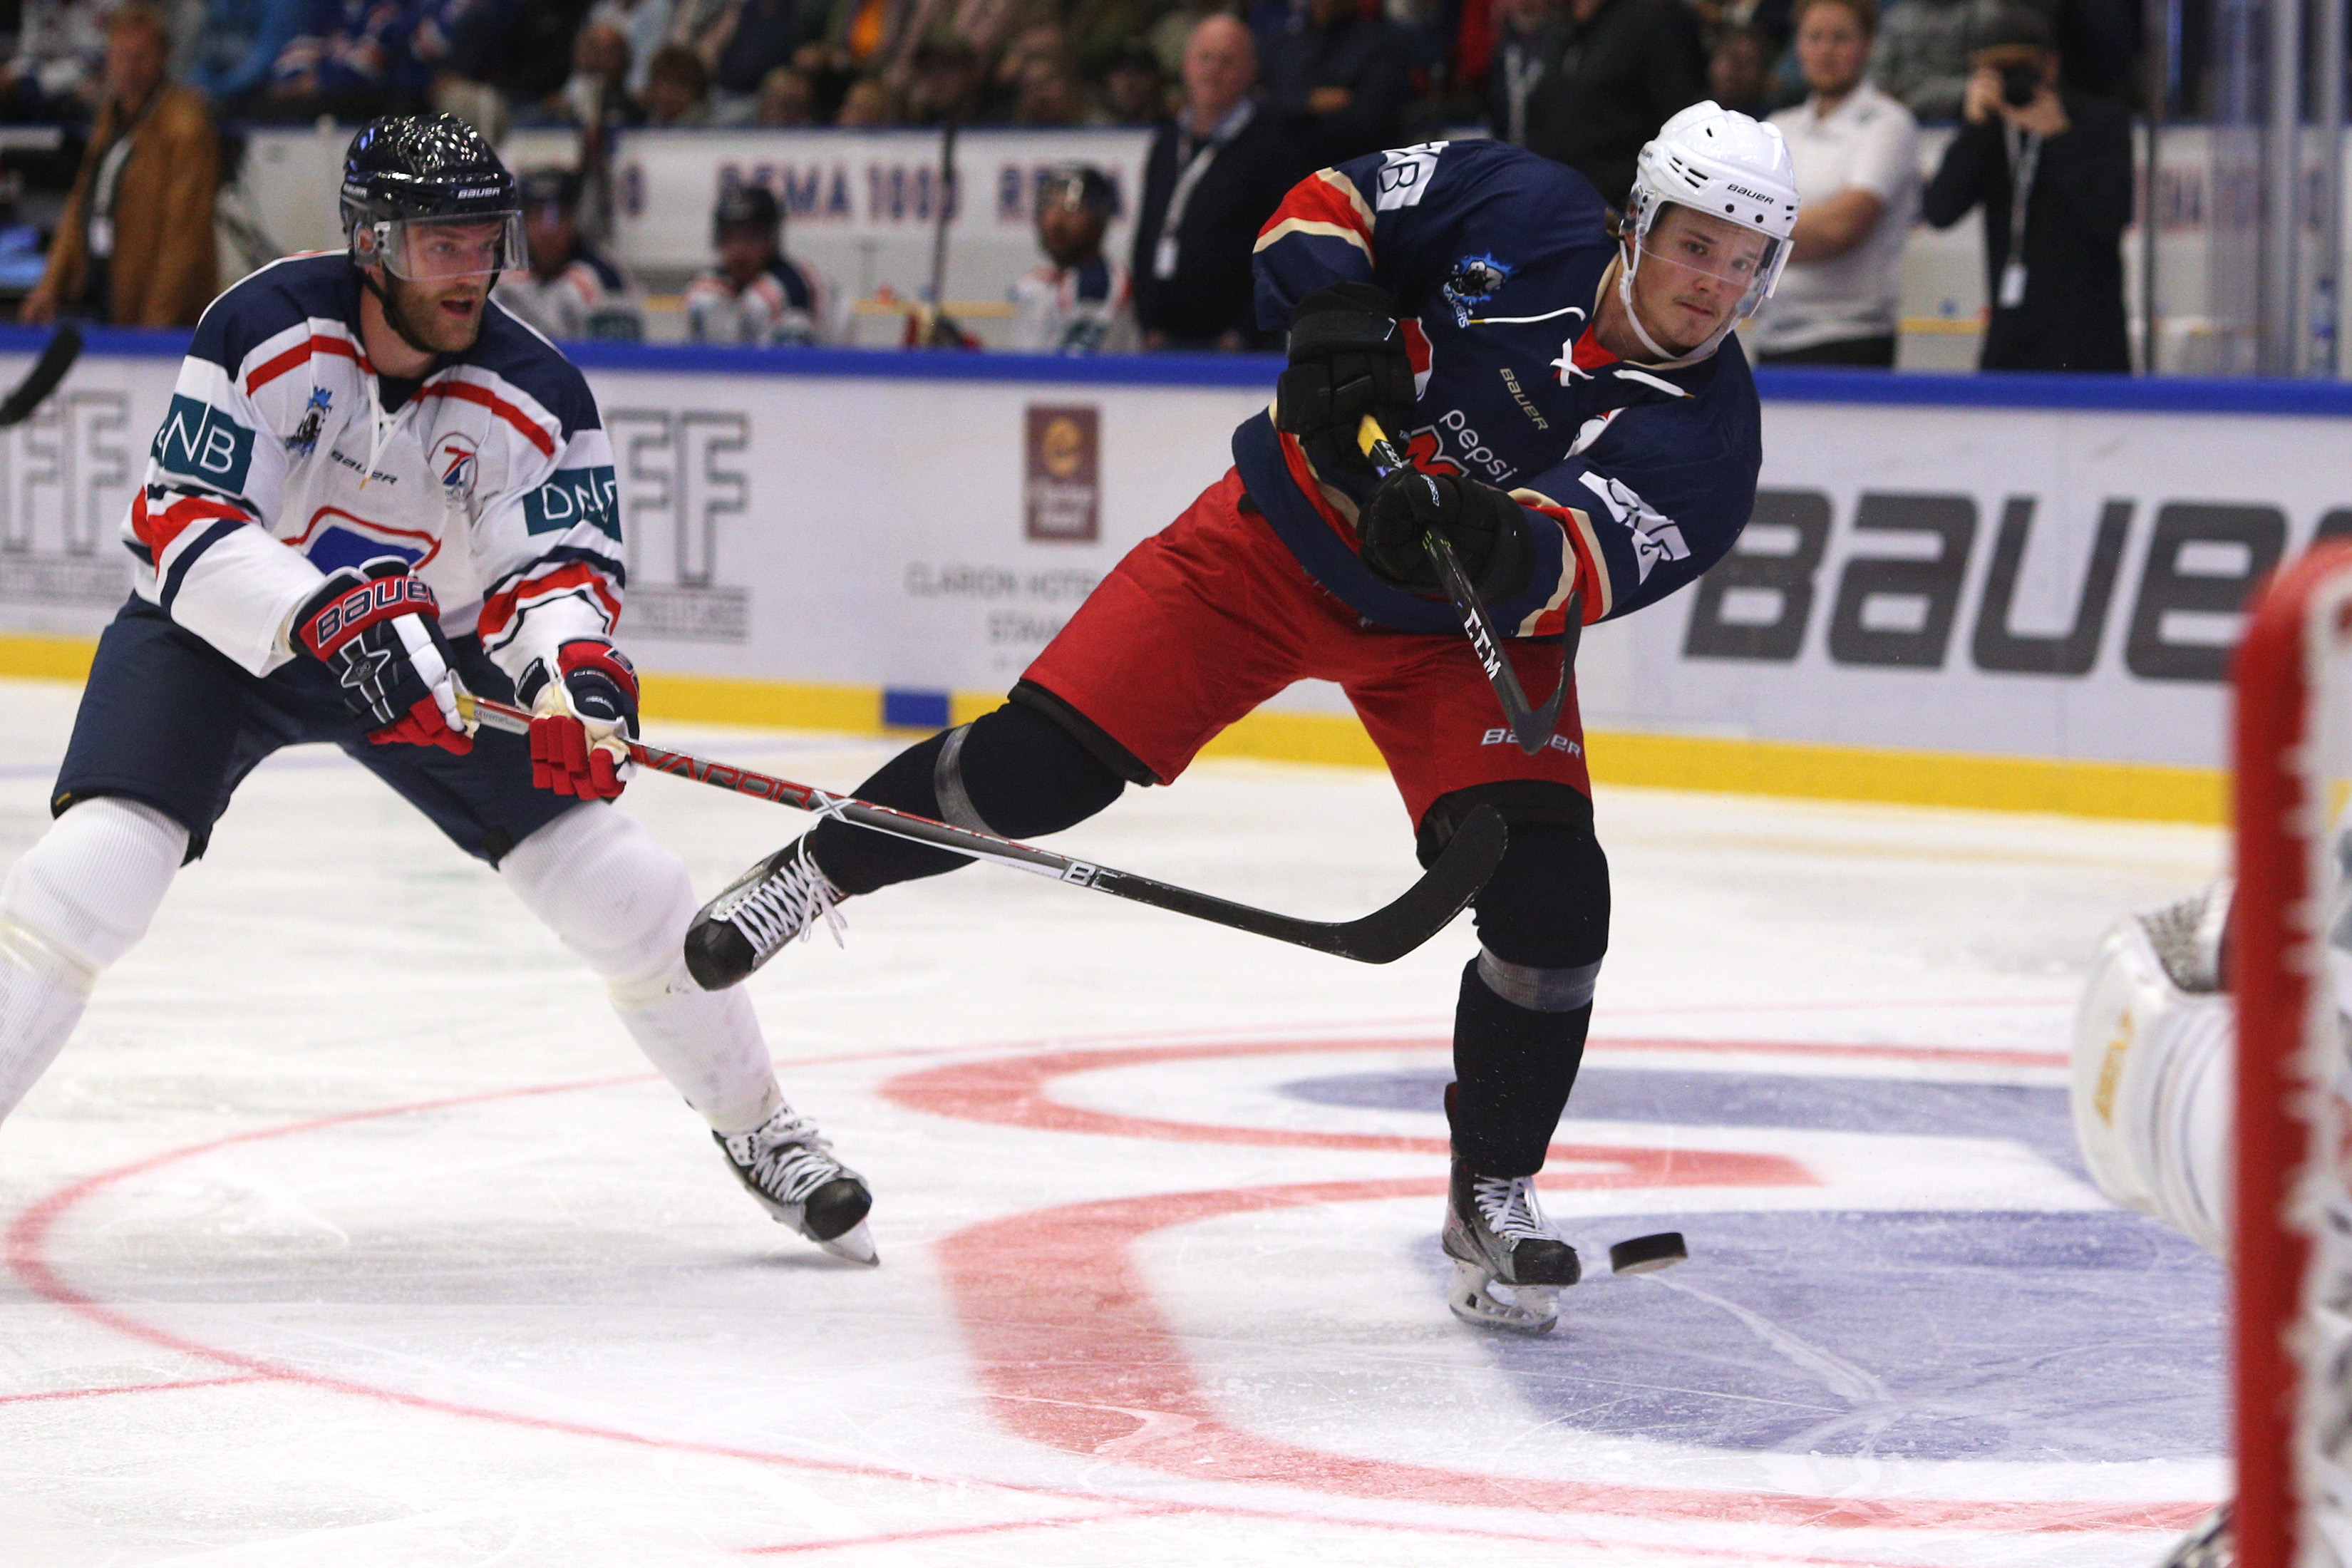 STAVANGER, NORWAY - AUGUST 16: Rudolfs Balcers in action during the Team Zuccarello v Team Icebreakers All Star Game at the DNB Arena on August 16, 2017 in Stavanger, Norway.